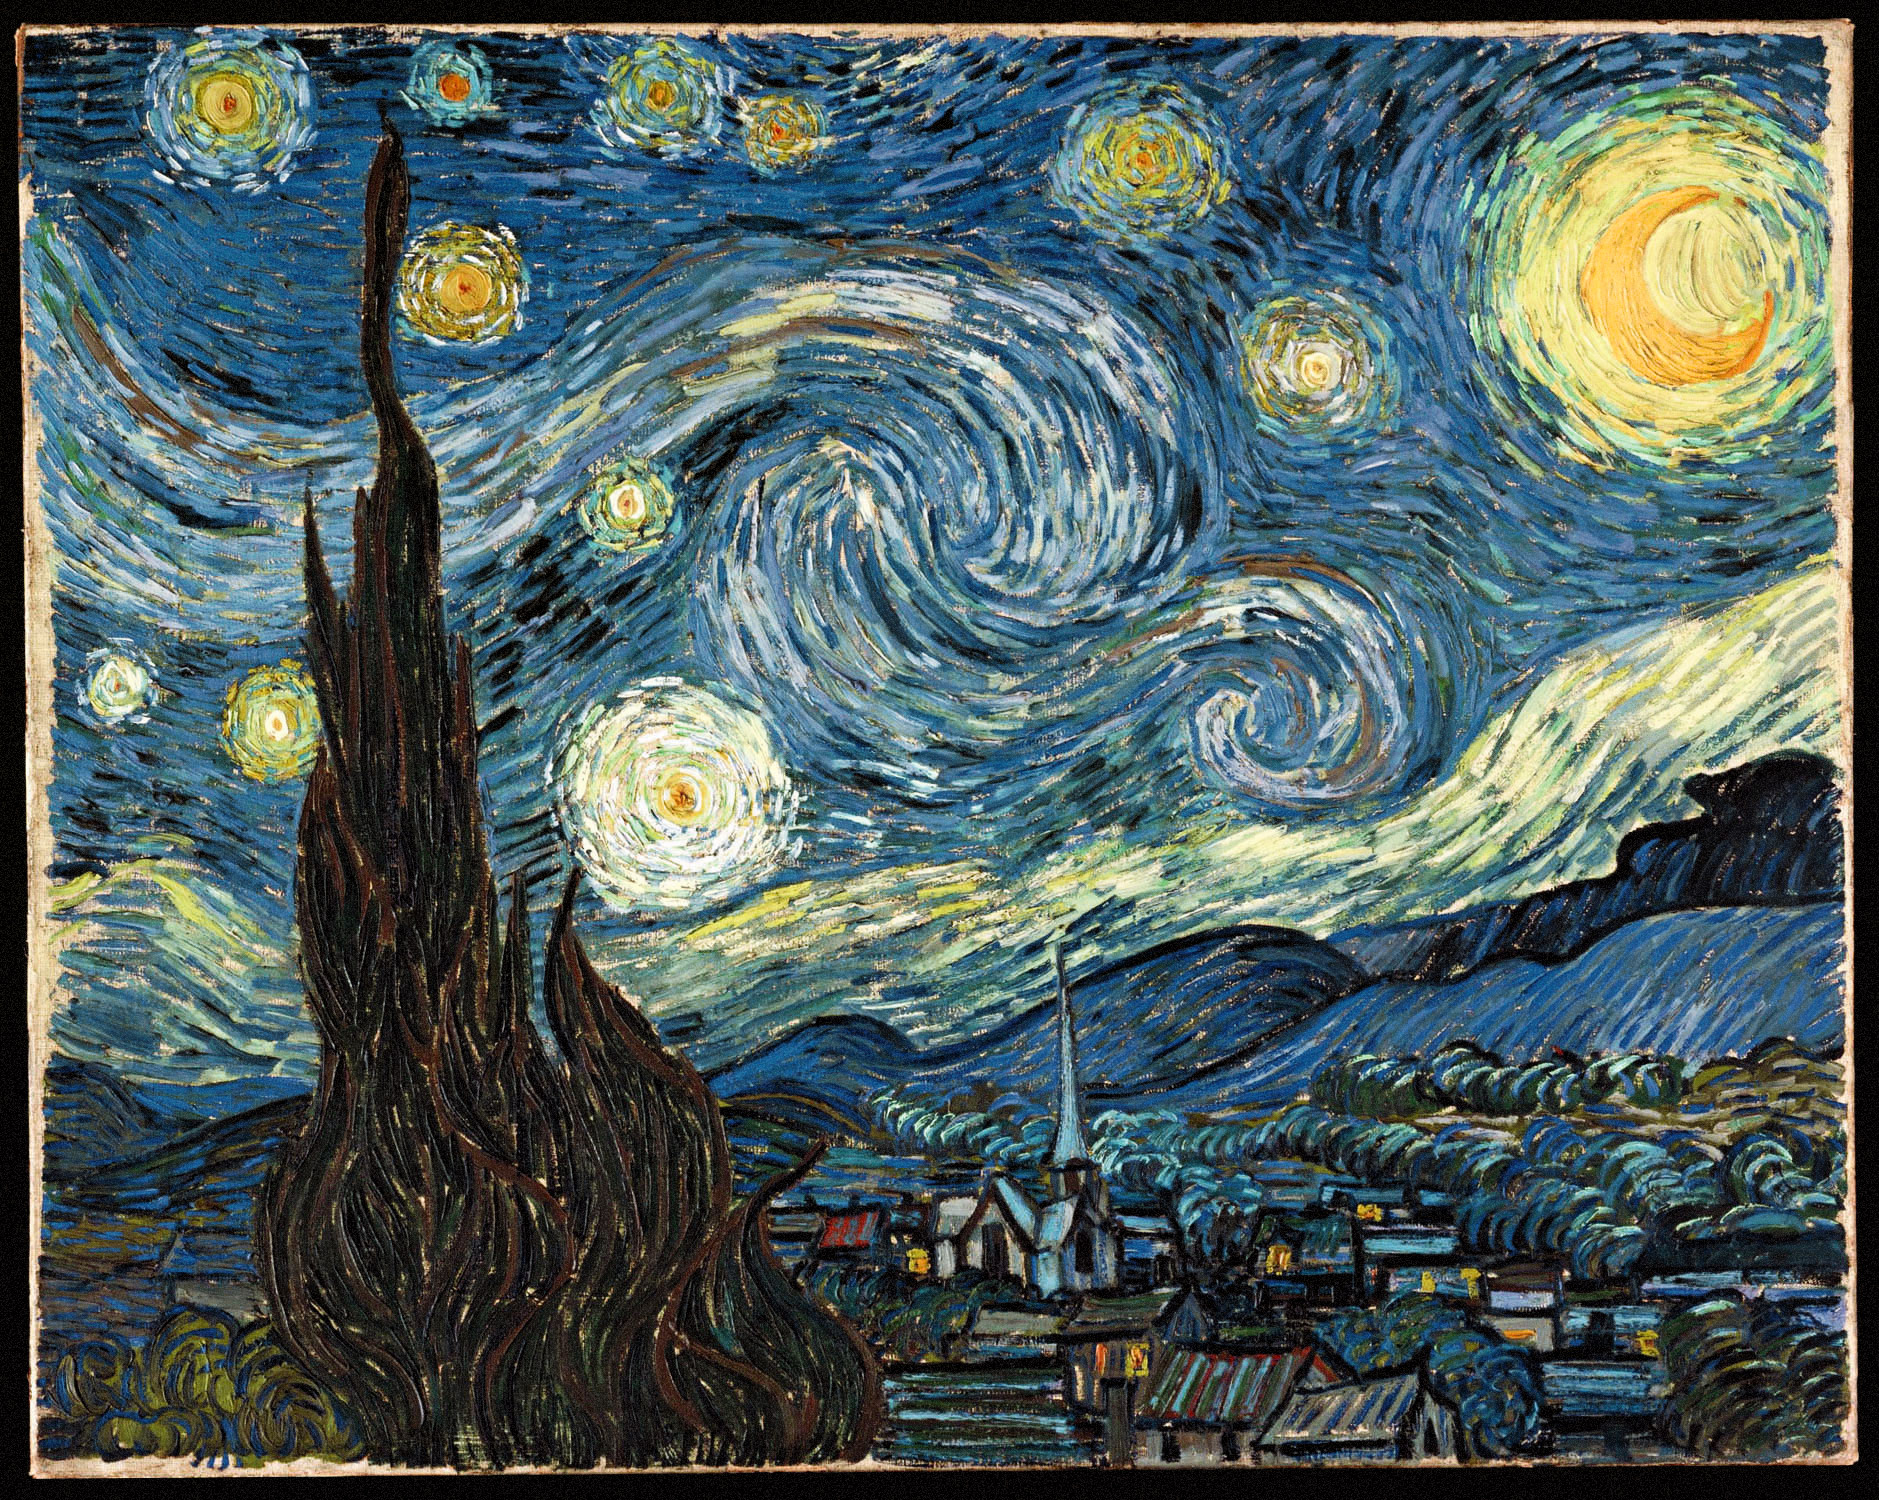 https://i0.wp.com/upload.wikimedia.org/wikipedia/commons/6/69/VanGogh-starry_night_edit.jpg